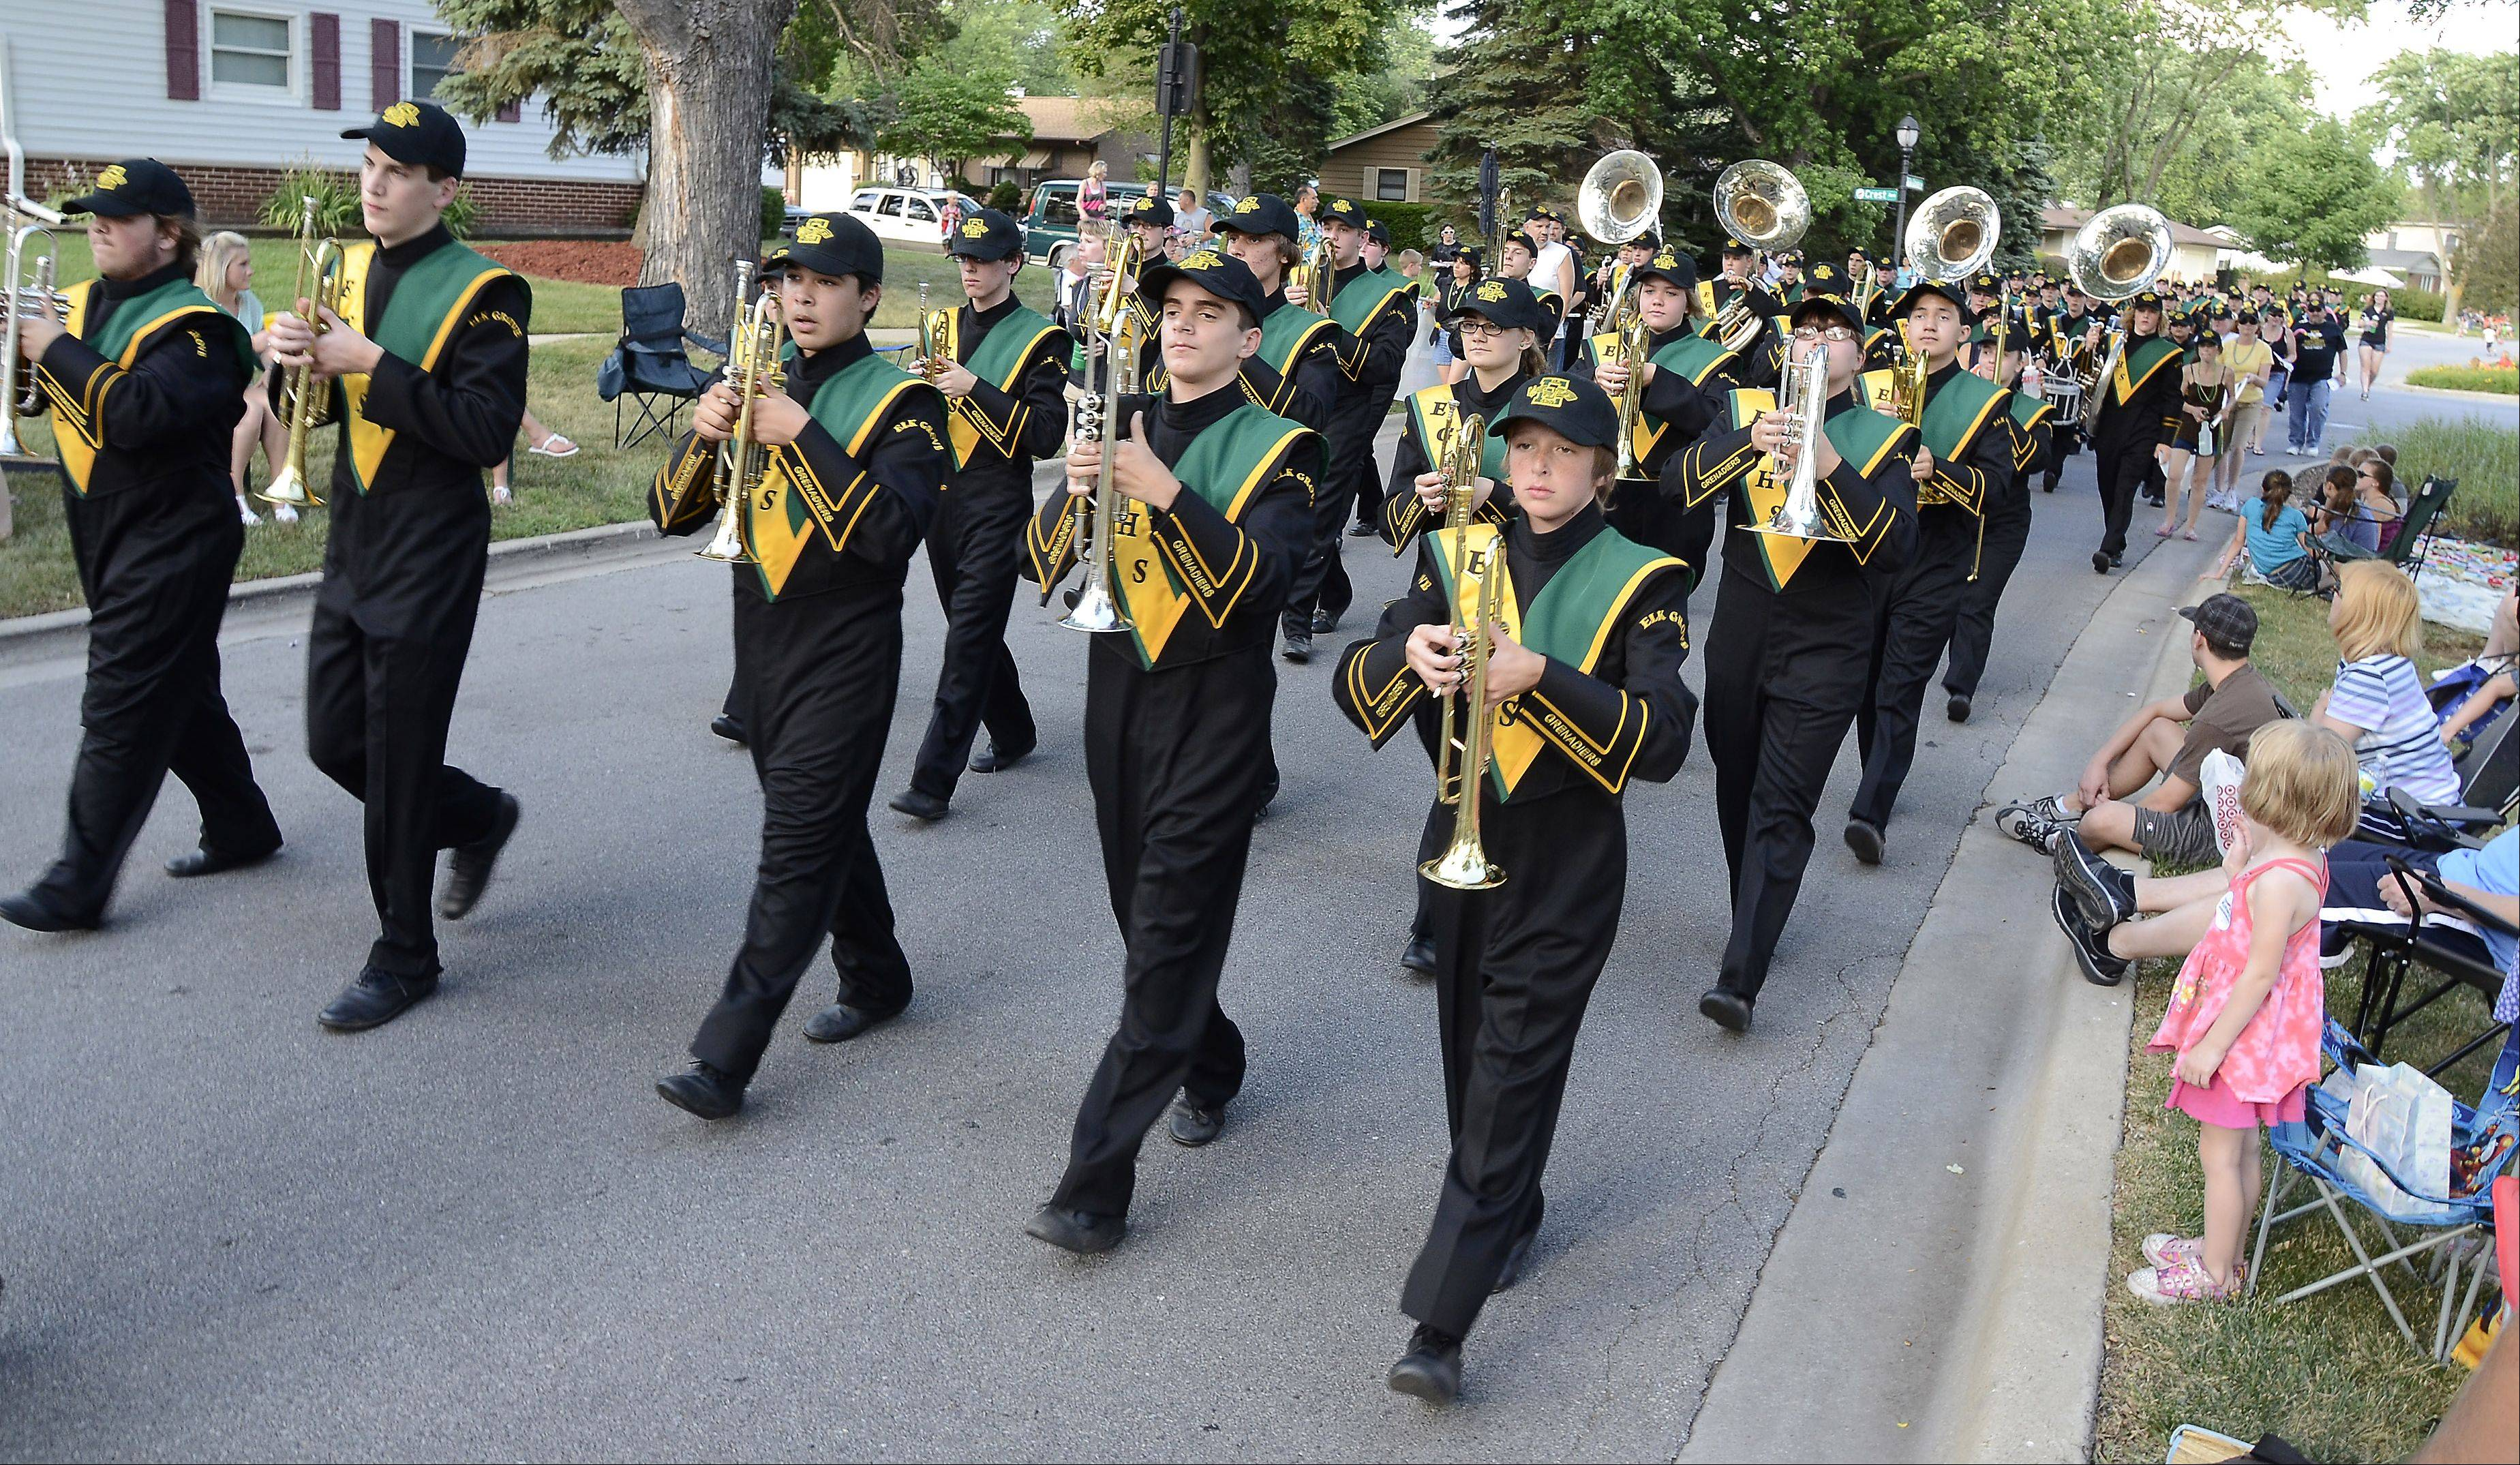 The Grenadiers perform during a previous Elk Grove Village Hometown Parade.